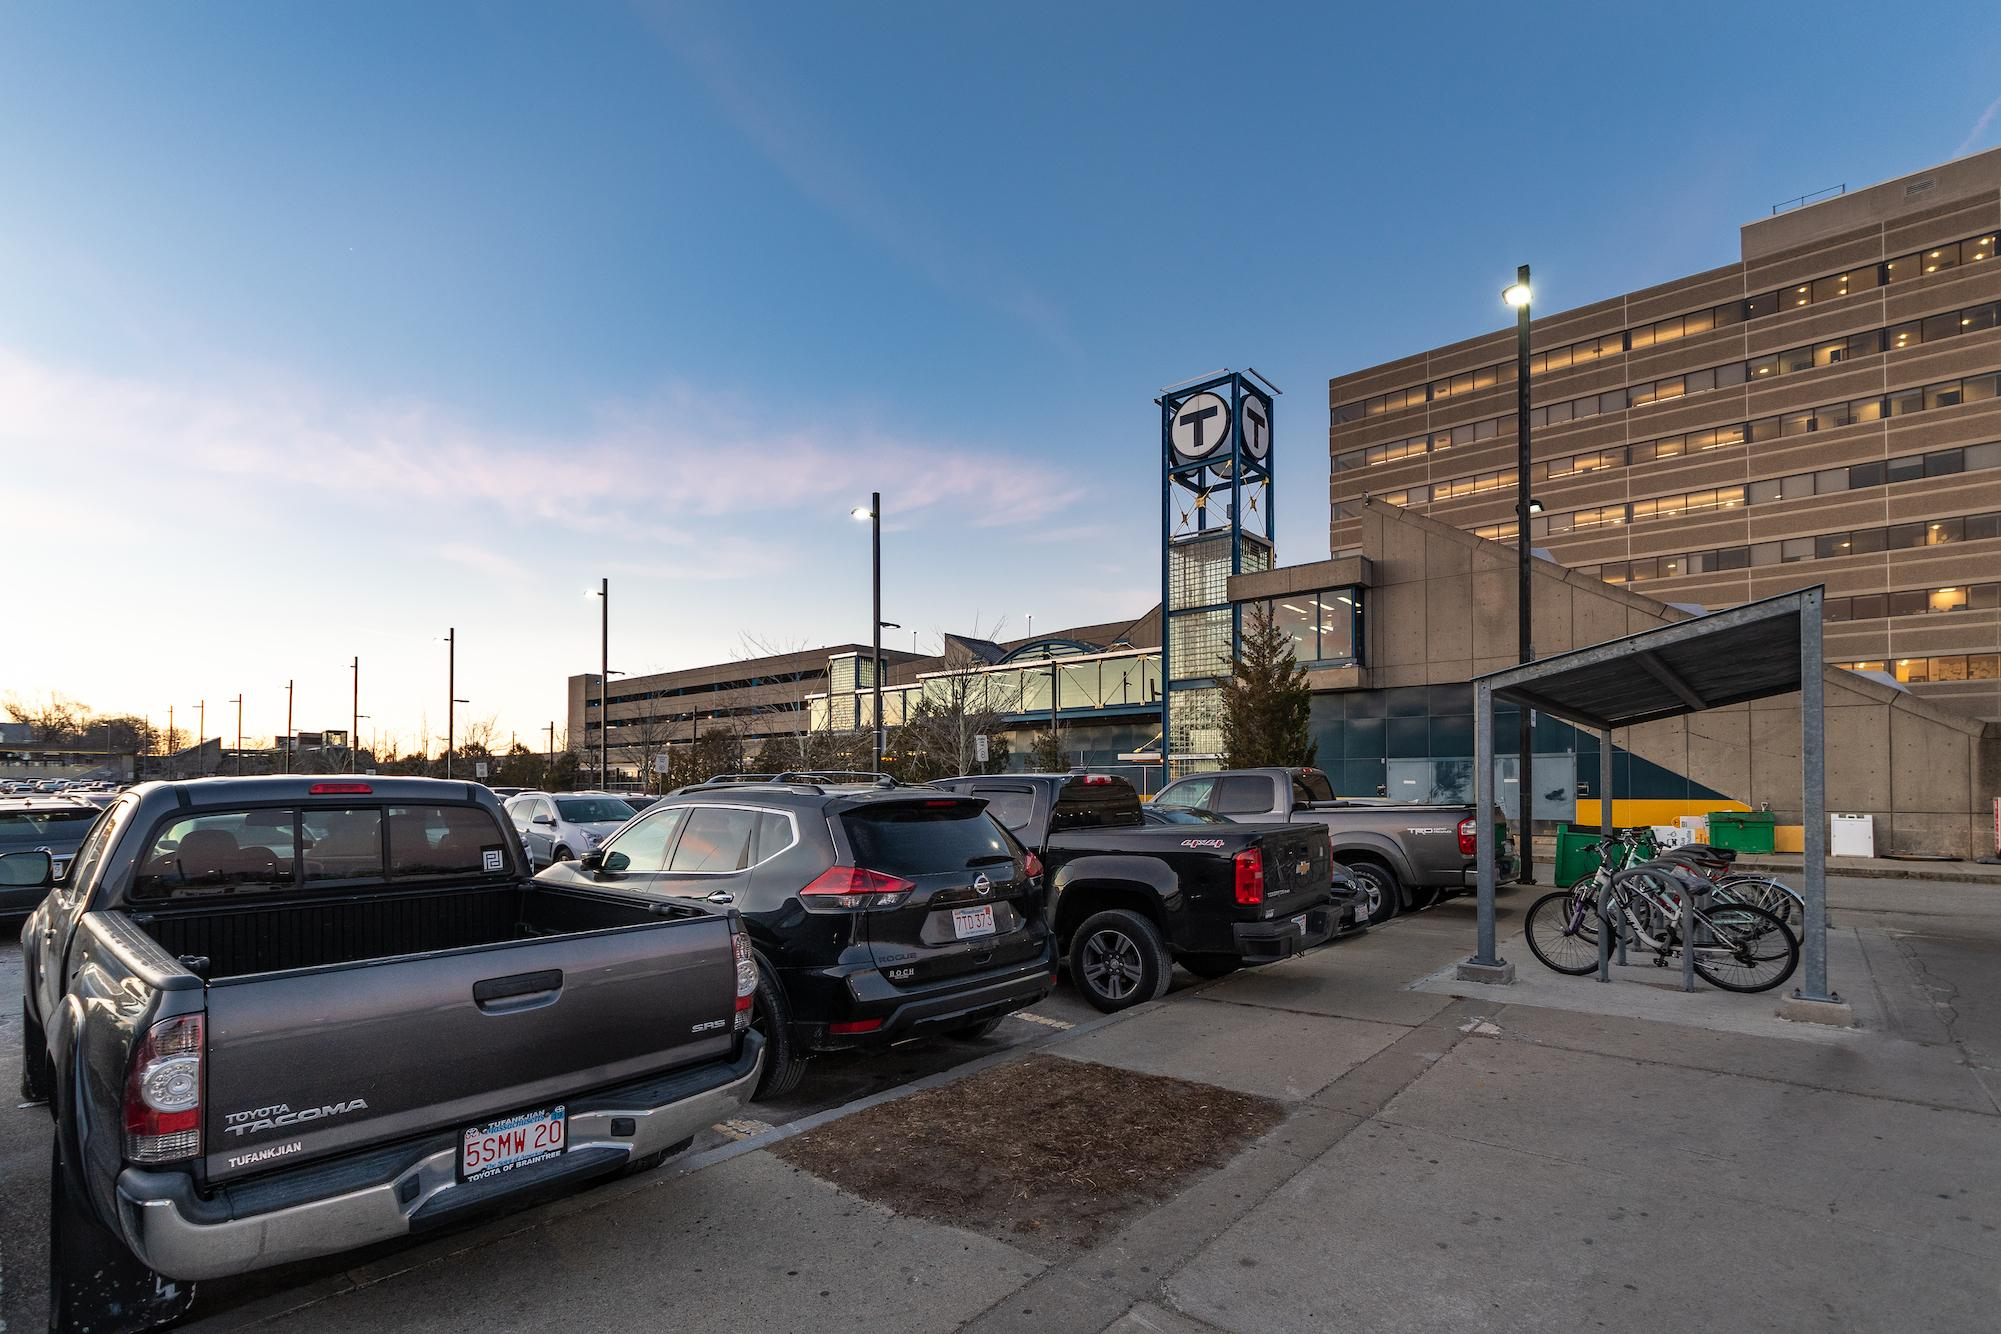 North Quincy station, parking lot, and bike racks